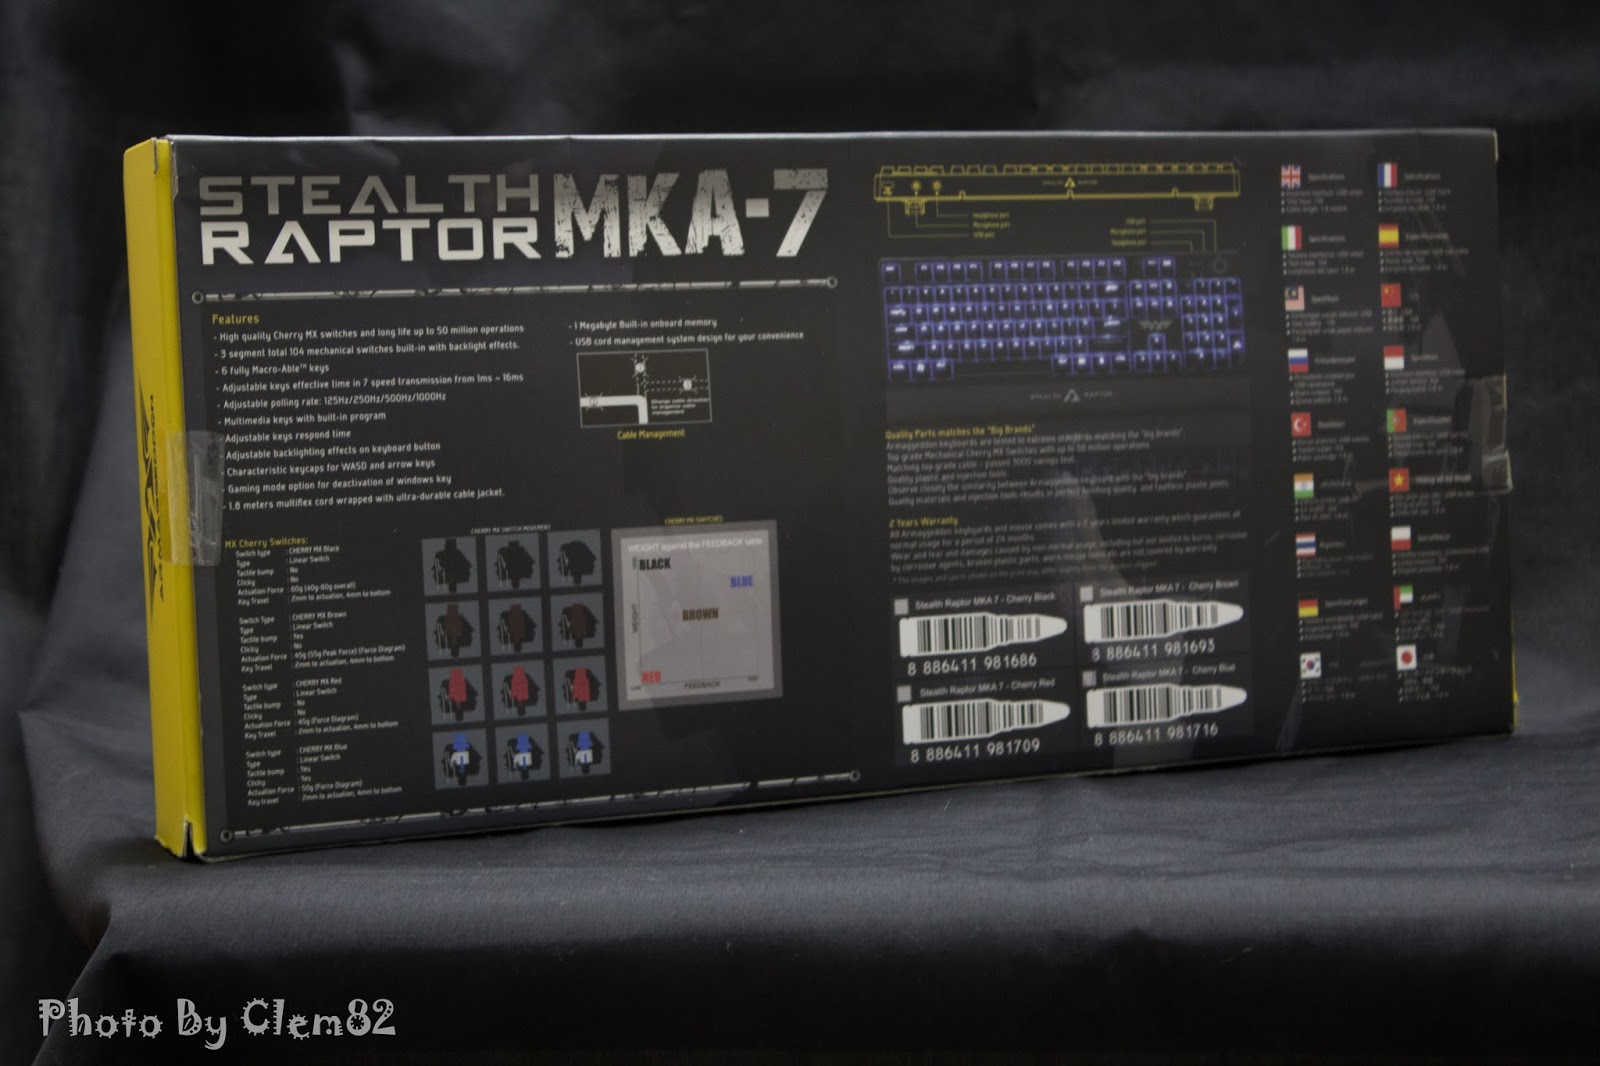 Armaggeddon Stealth Raptor MKA-7 Mechanical Gaming Keyboard 37